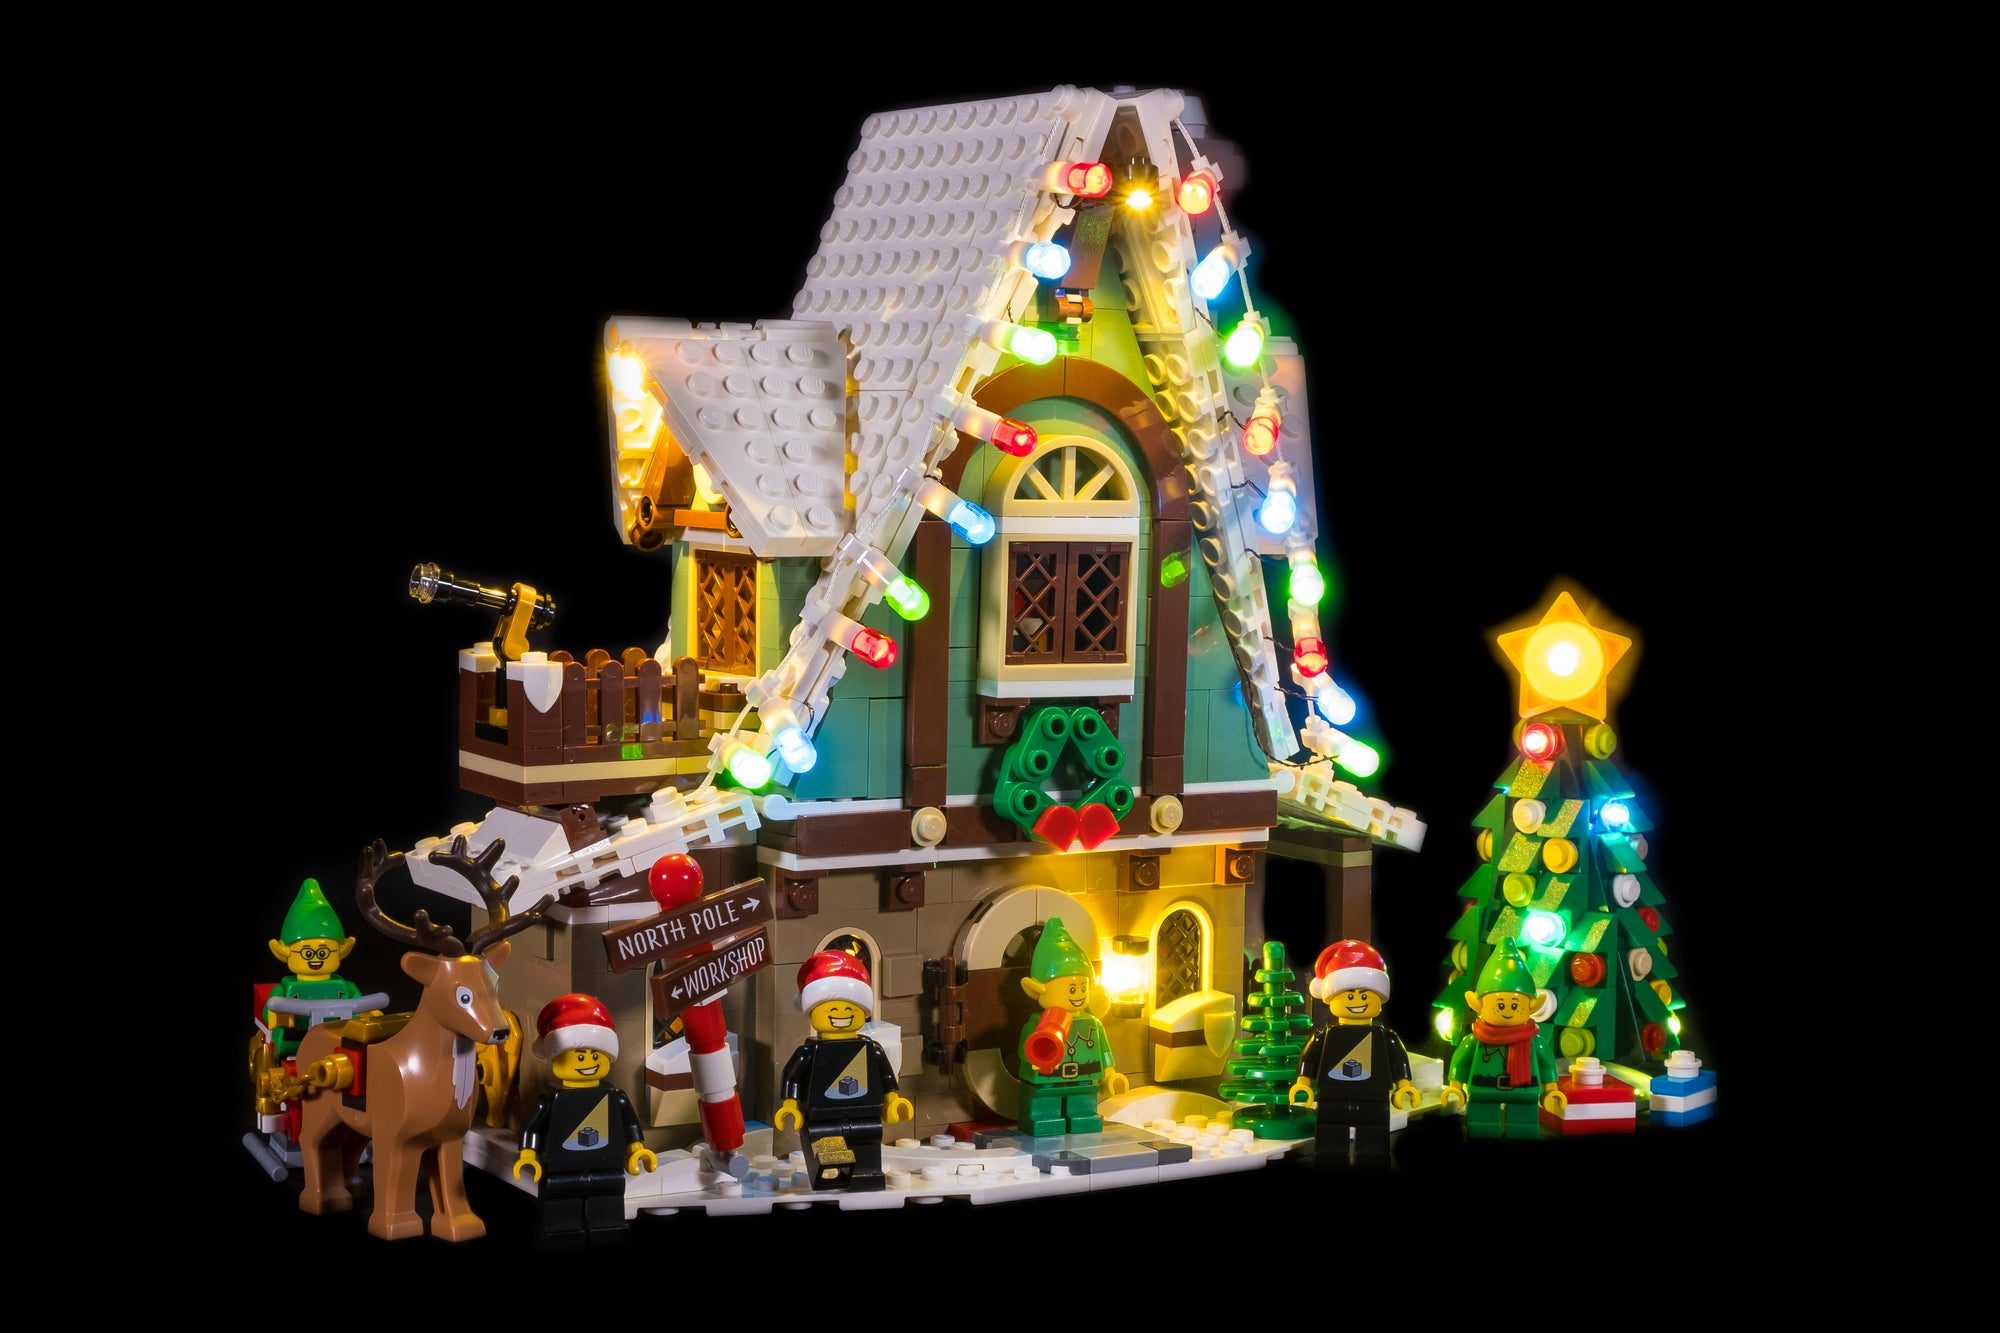 LEGO Elf Club House 10275 Review & Lighting Journal